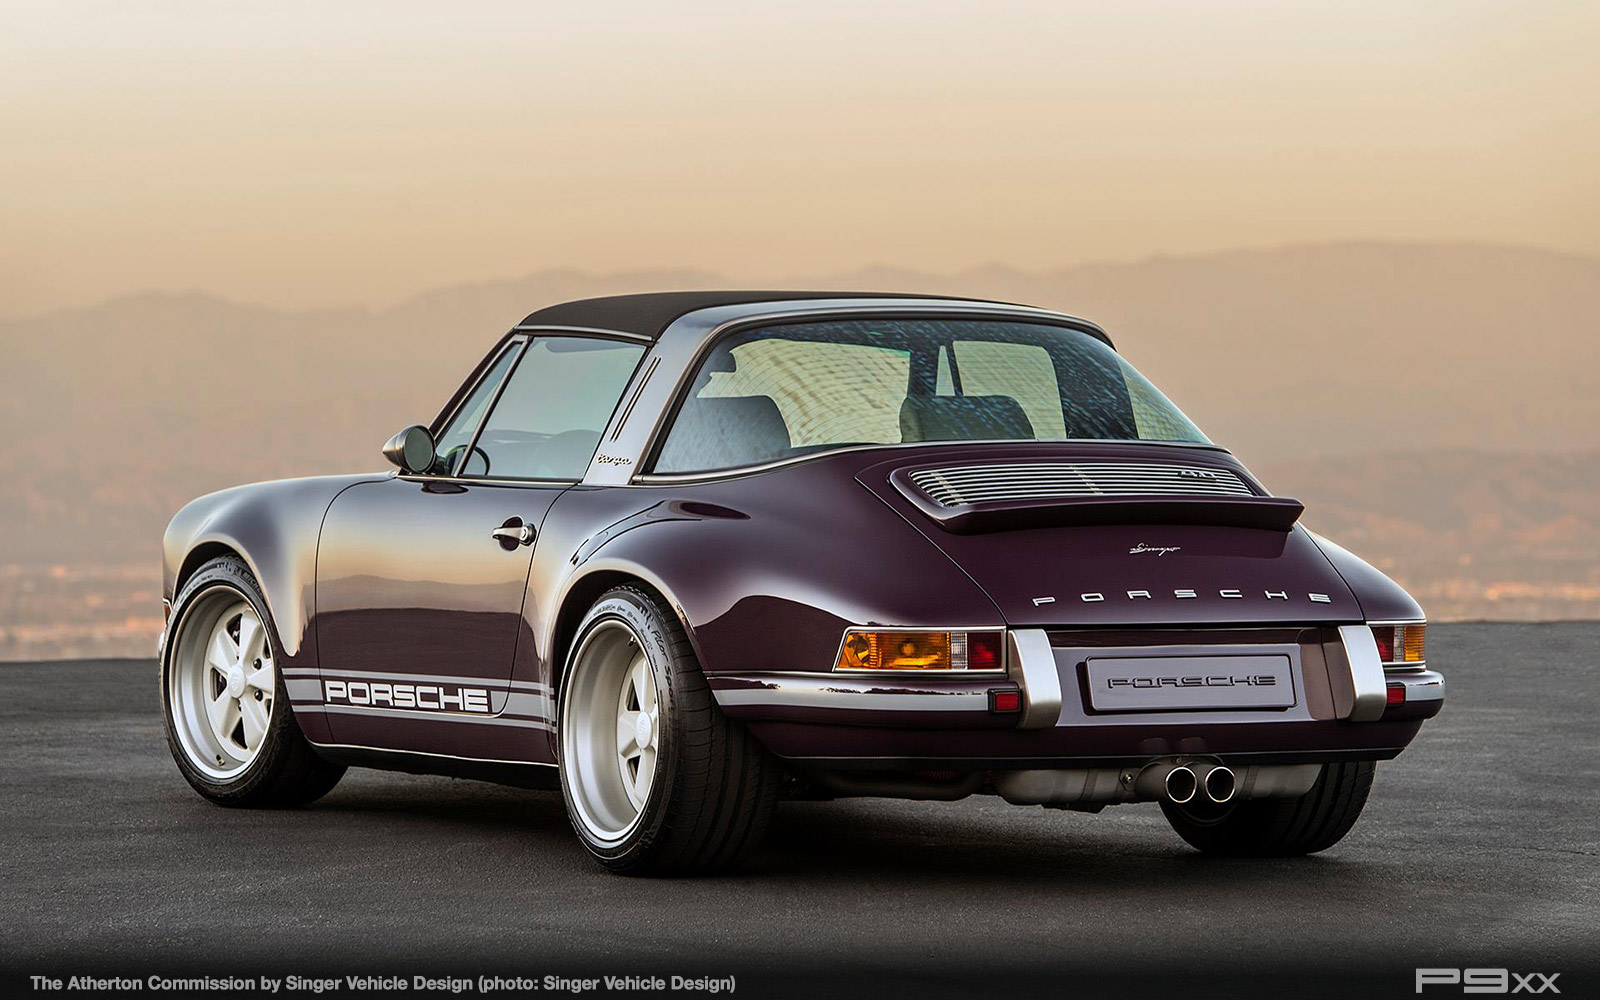 Singer Atherton Is One Incredibly Purple Porsche Targa P9xx